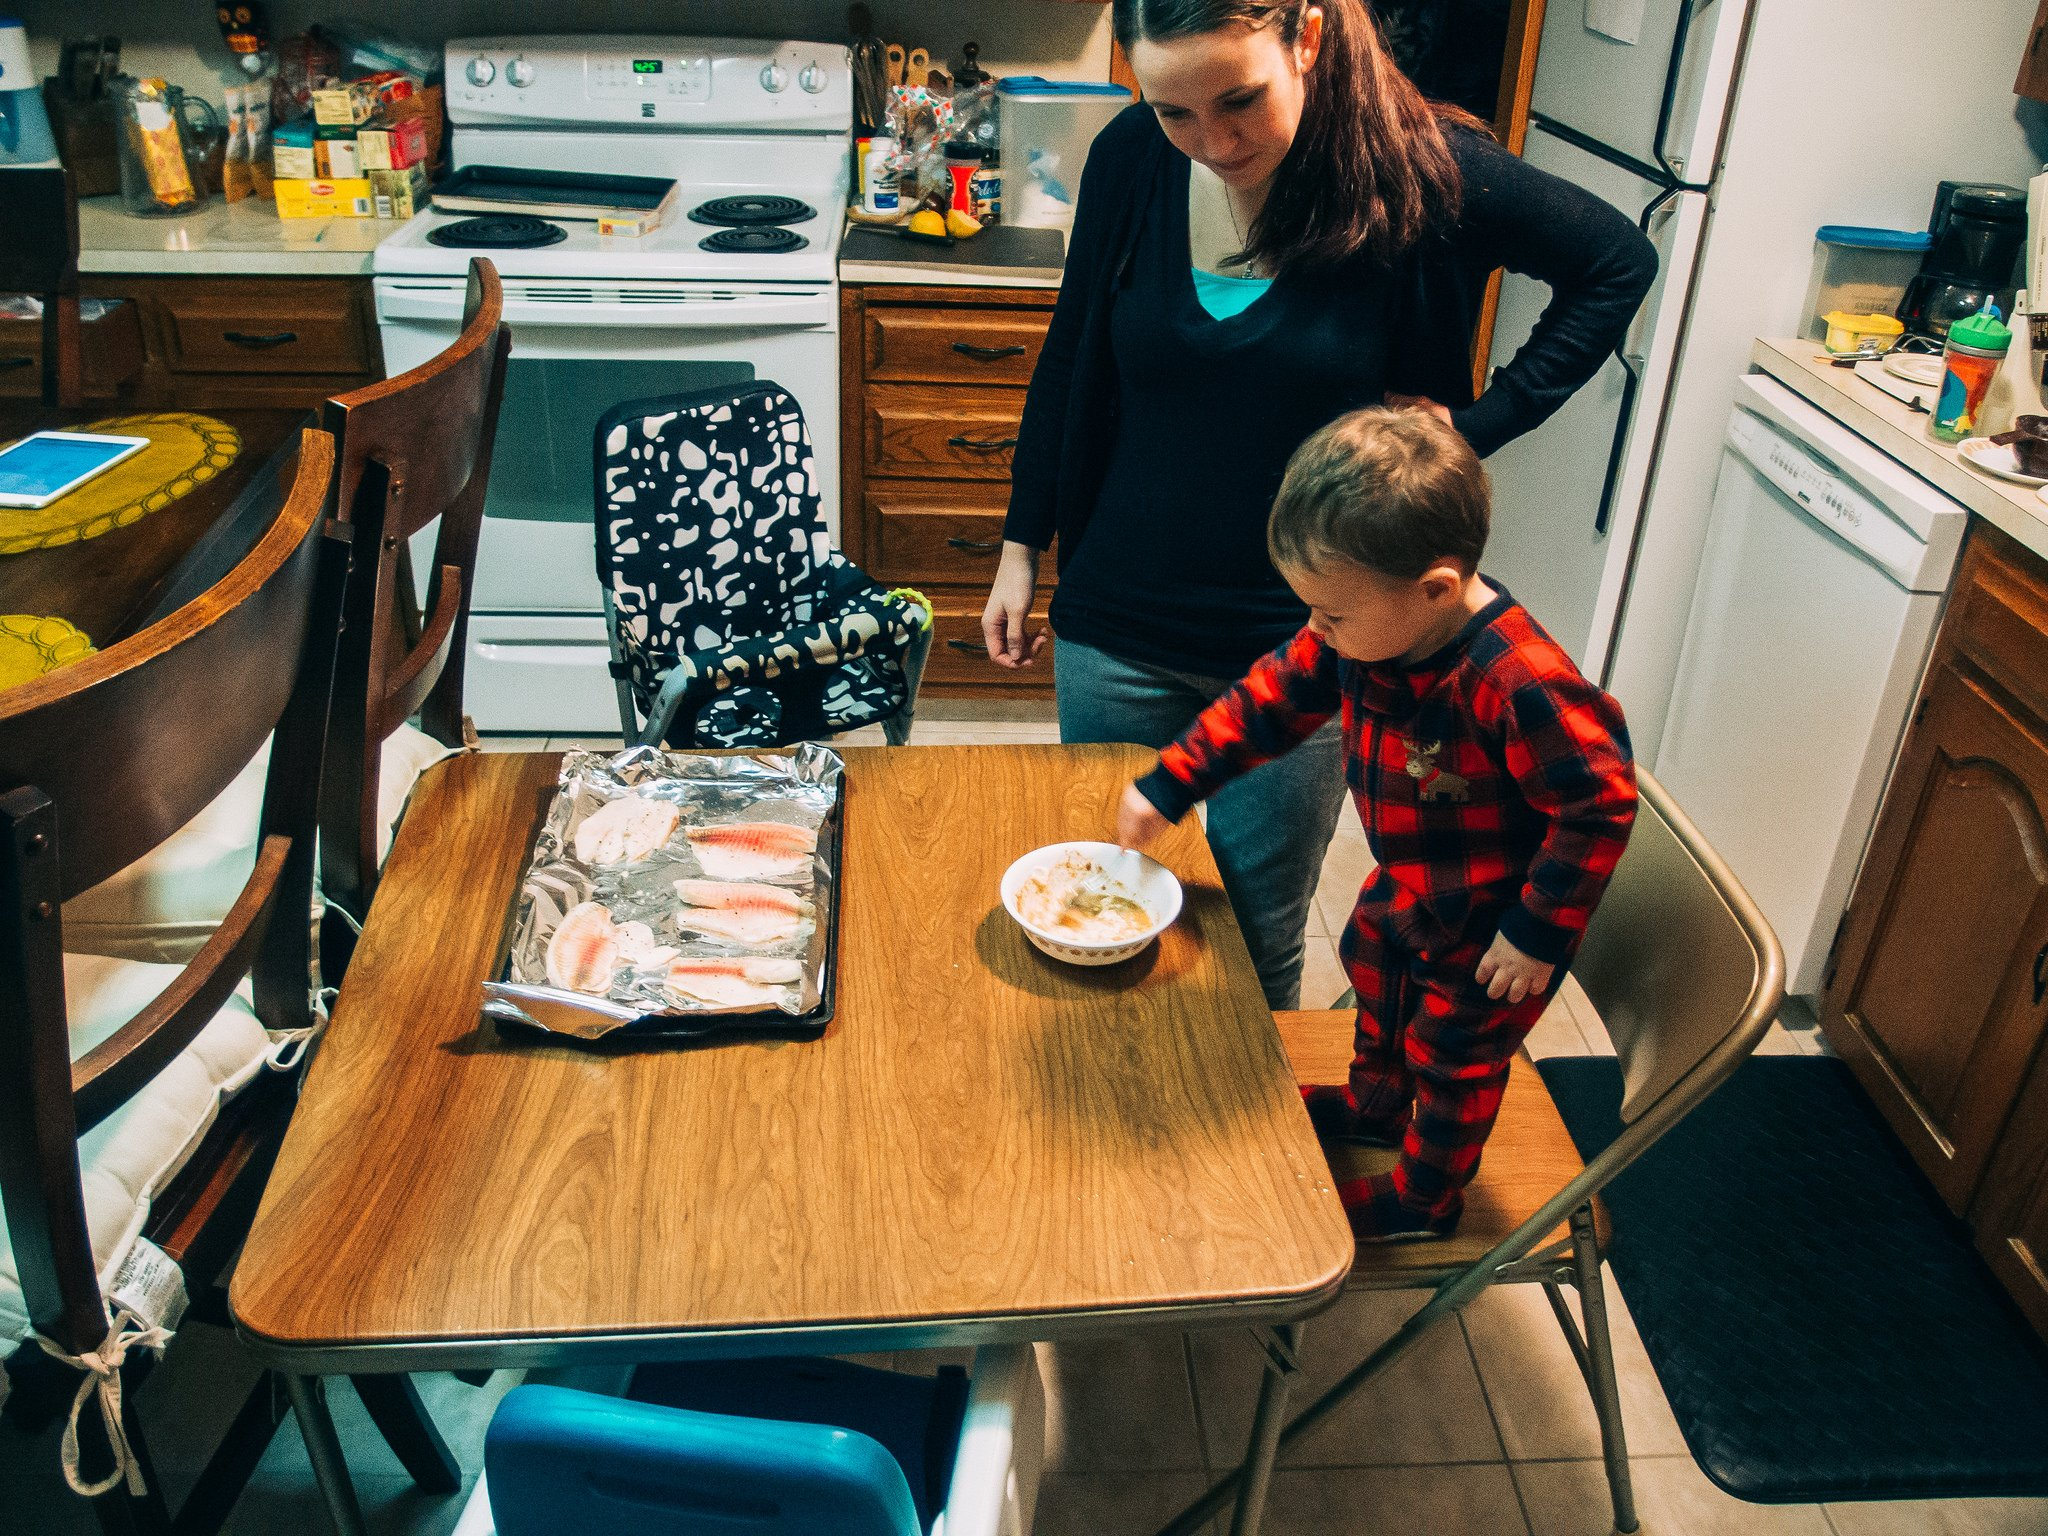 Healthy Eating and Cooking with Children